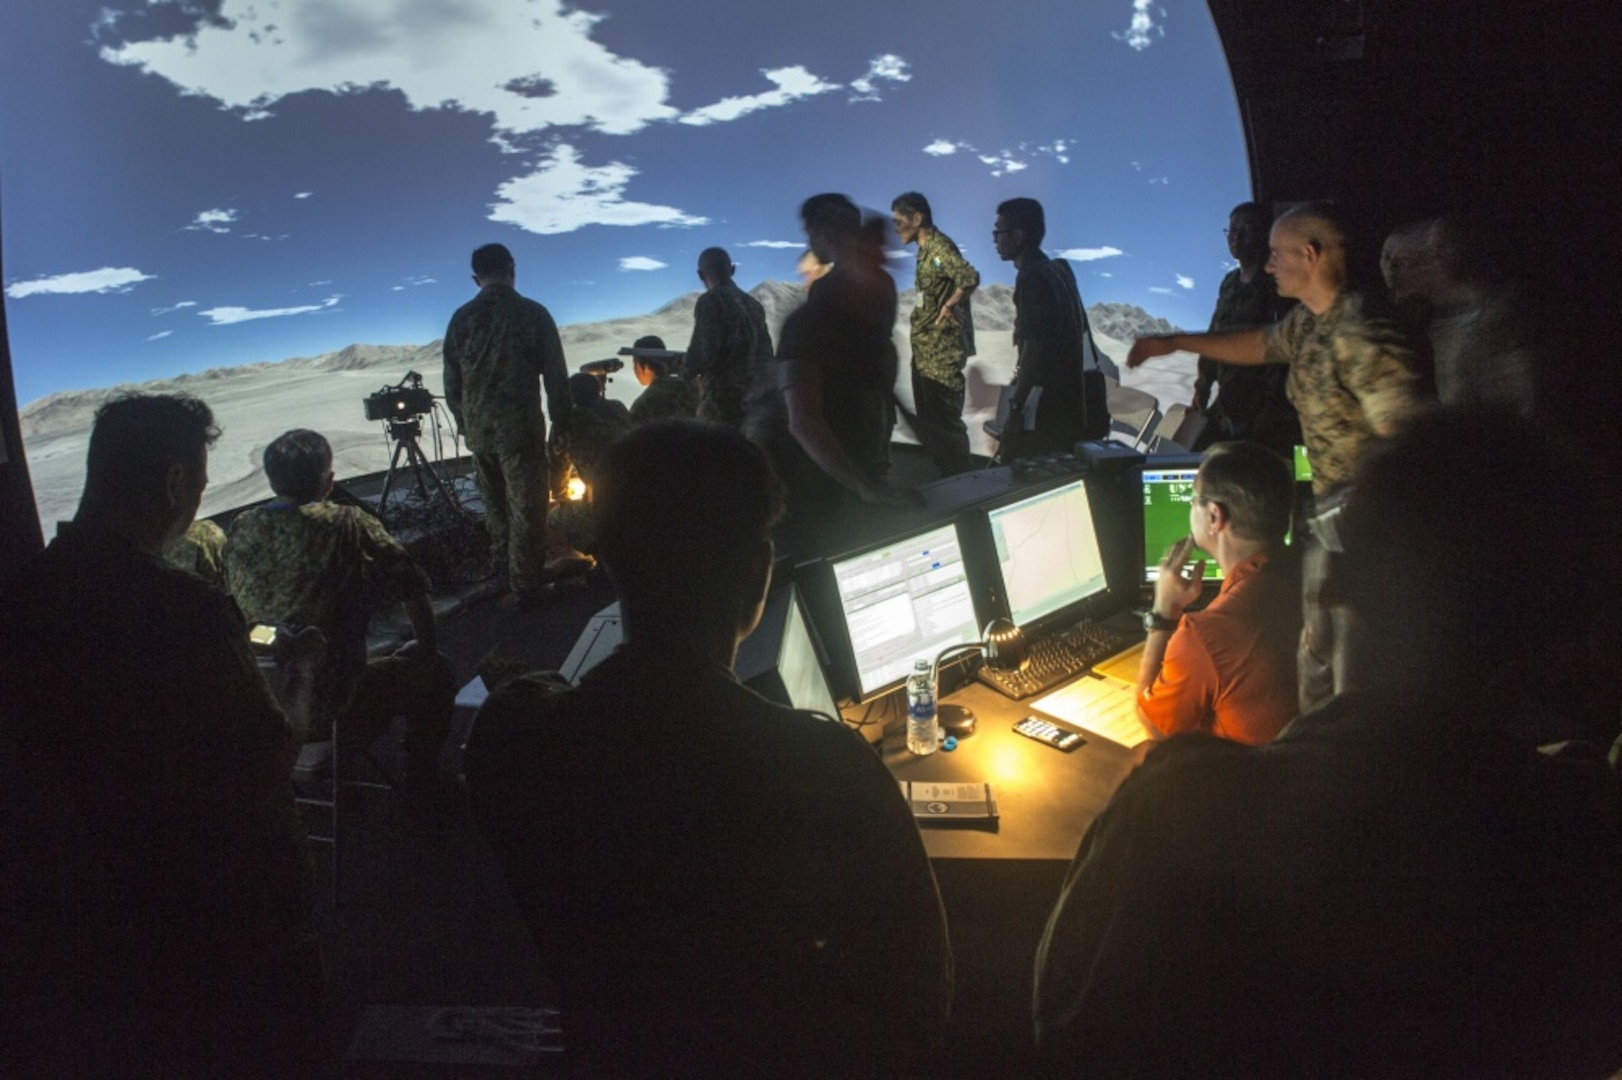 Service members with the Japan Ground Self-Defense Force simulate calls-for-fire drills in the Supporting Arms Virtual Trainer on Camp Hansen, Okinawa, Japan, April 9, 2019. This observation and exchange provided opportunities for the 31st MEU Marines, and JGSDF personnel, to increasing understanding and interoperability. The 31st MEU, the Marine Corps' only continuously forward-deployed MEU, provides a flexible and lethal force ready to perform a wide range of military operations as the premier crisis response force in the Indo-Pacific region. (Official Marine Corps photo by Lance Cpl. Harrison C. Rakhshani/Released)